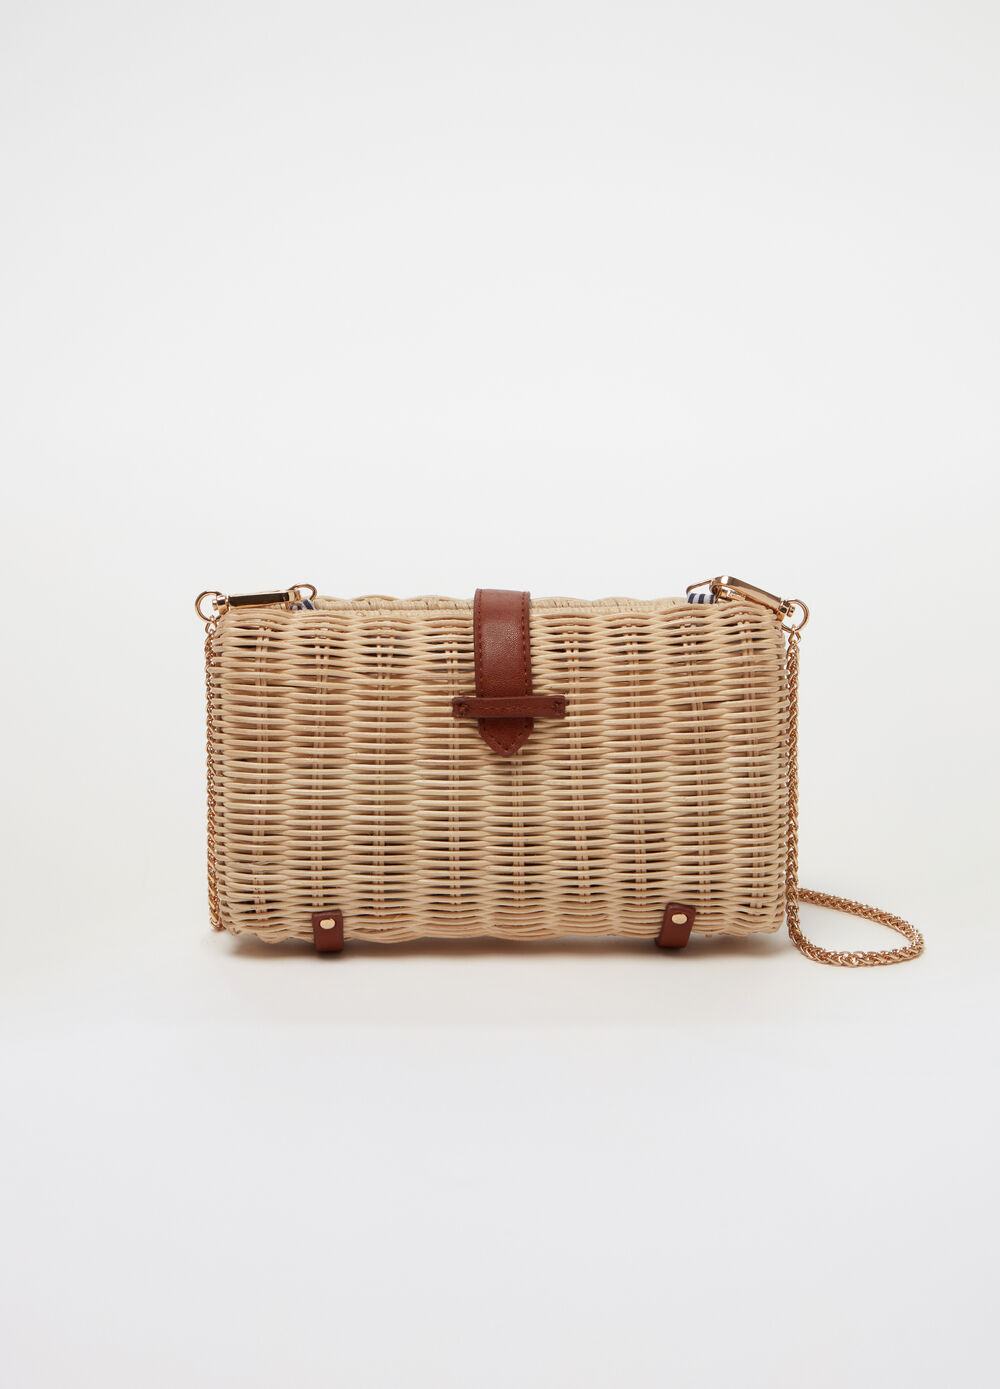 Woven clutch bag with chain